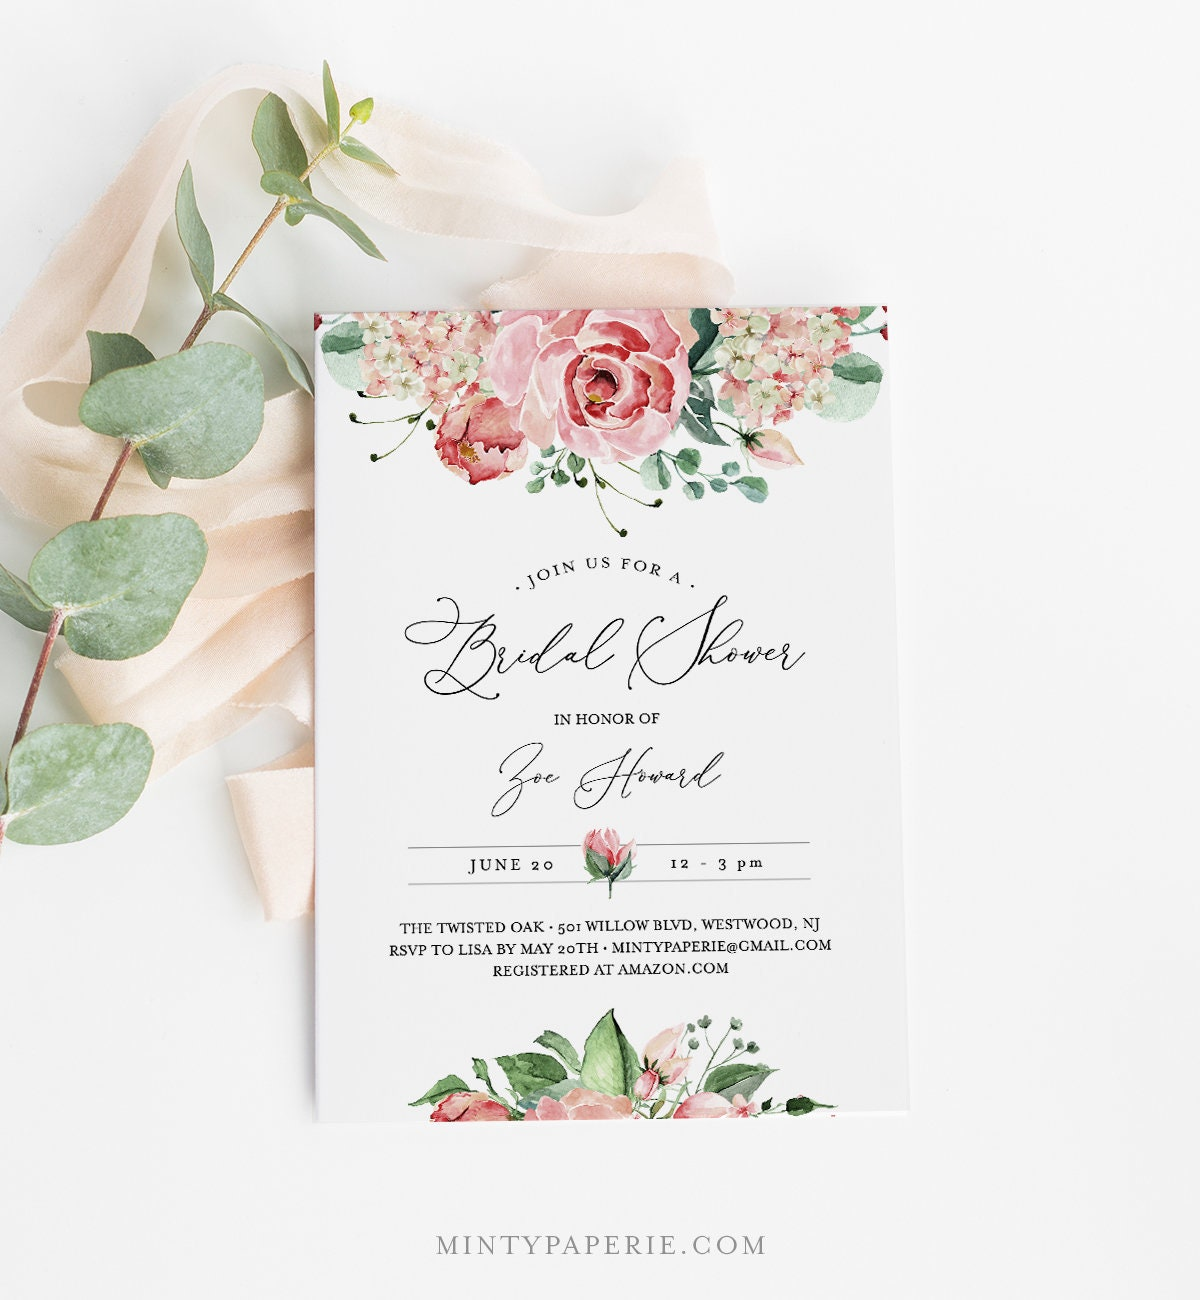 self editing bridal shower invitation template instant download printable vintage watercolor floral invite 100 editable text 060 159bs